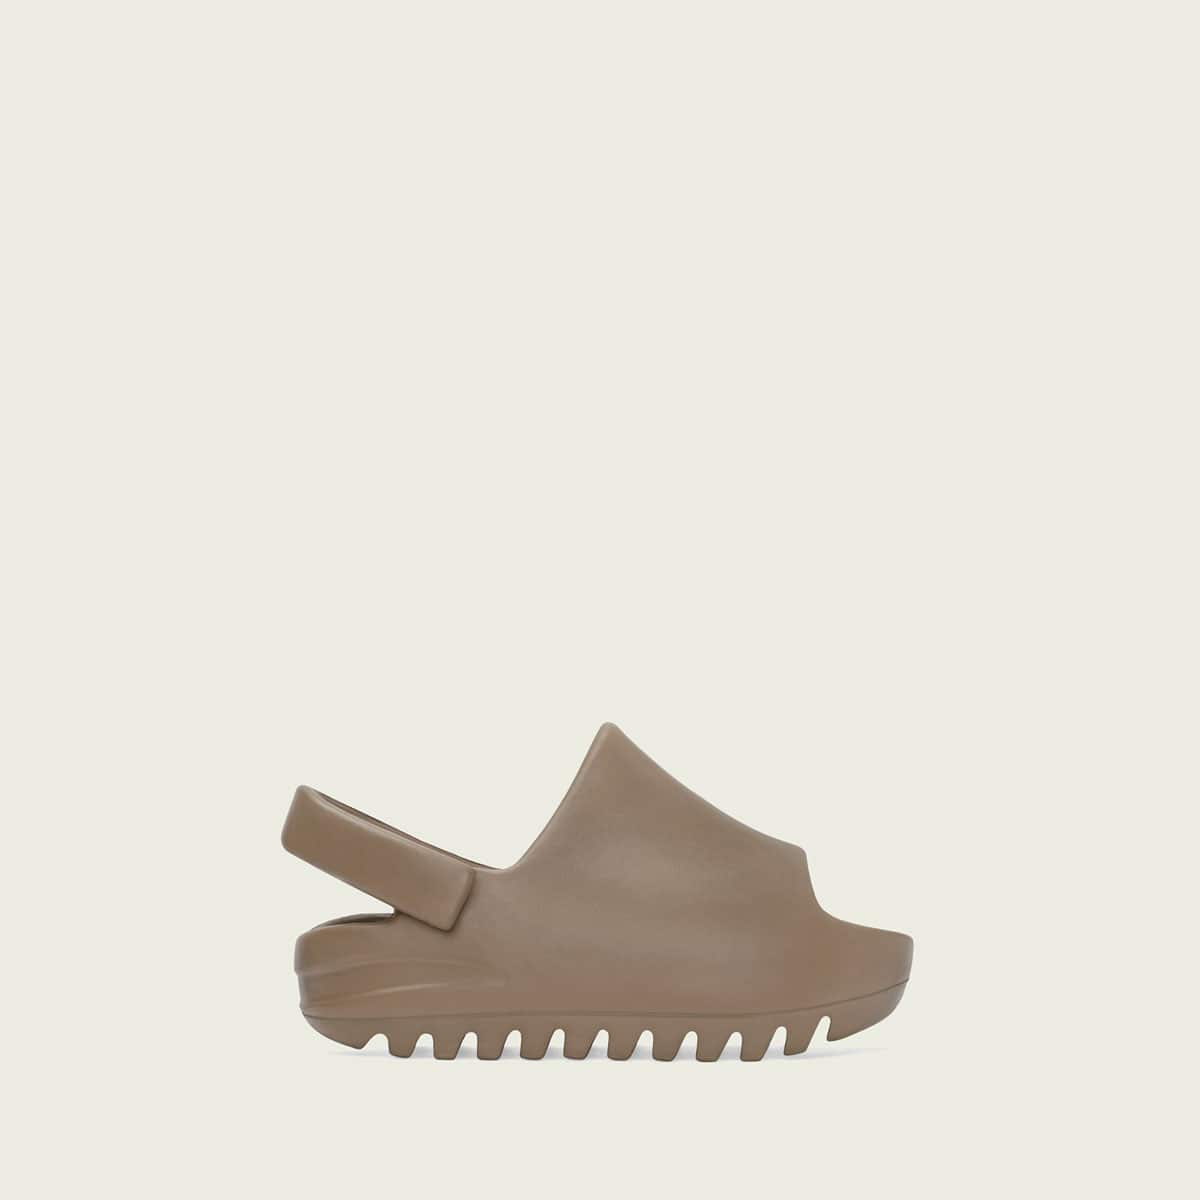 "adidas YEEZY SLIDE INFANT""EARTH BROWN"" EARTH BROWN/EARTH BROWN/EARTH BROWN 20SS-S_photo_large"